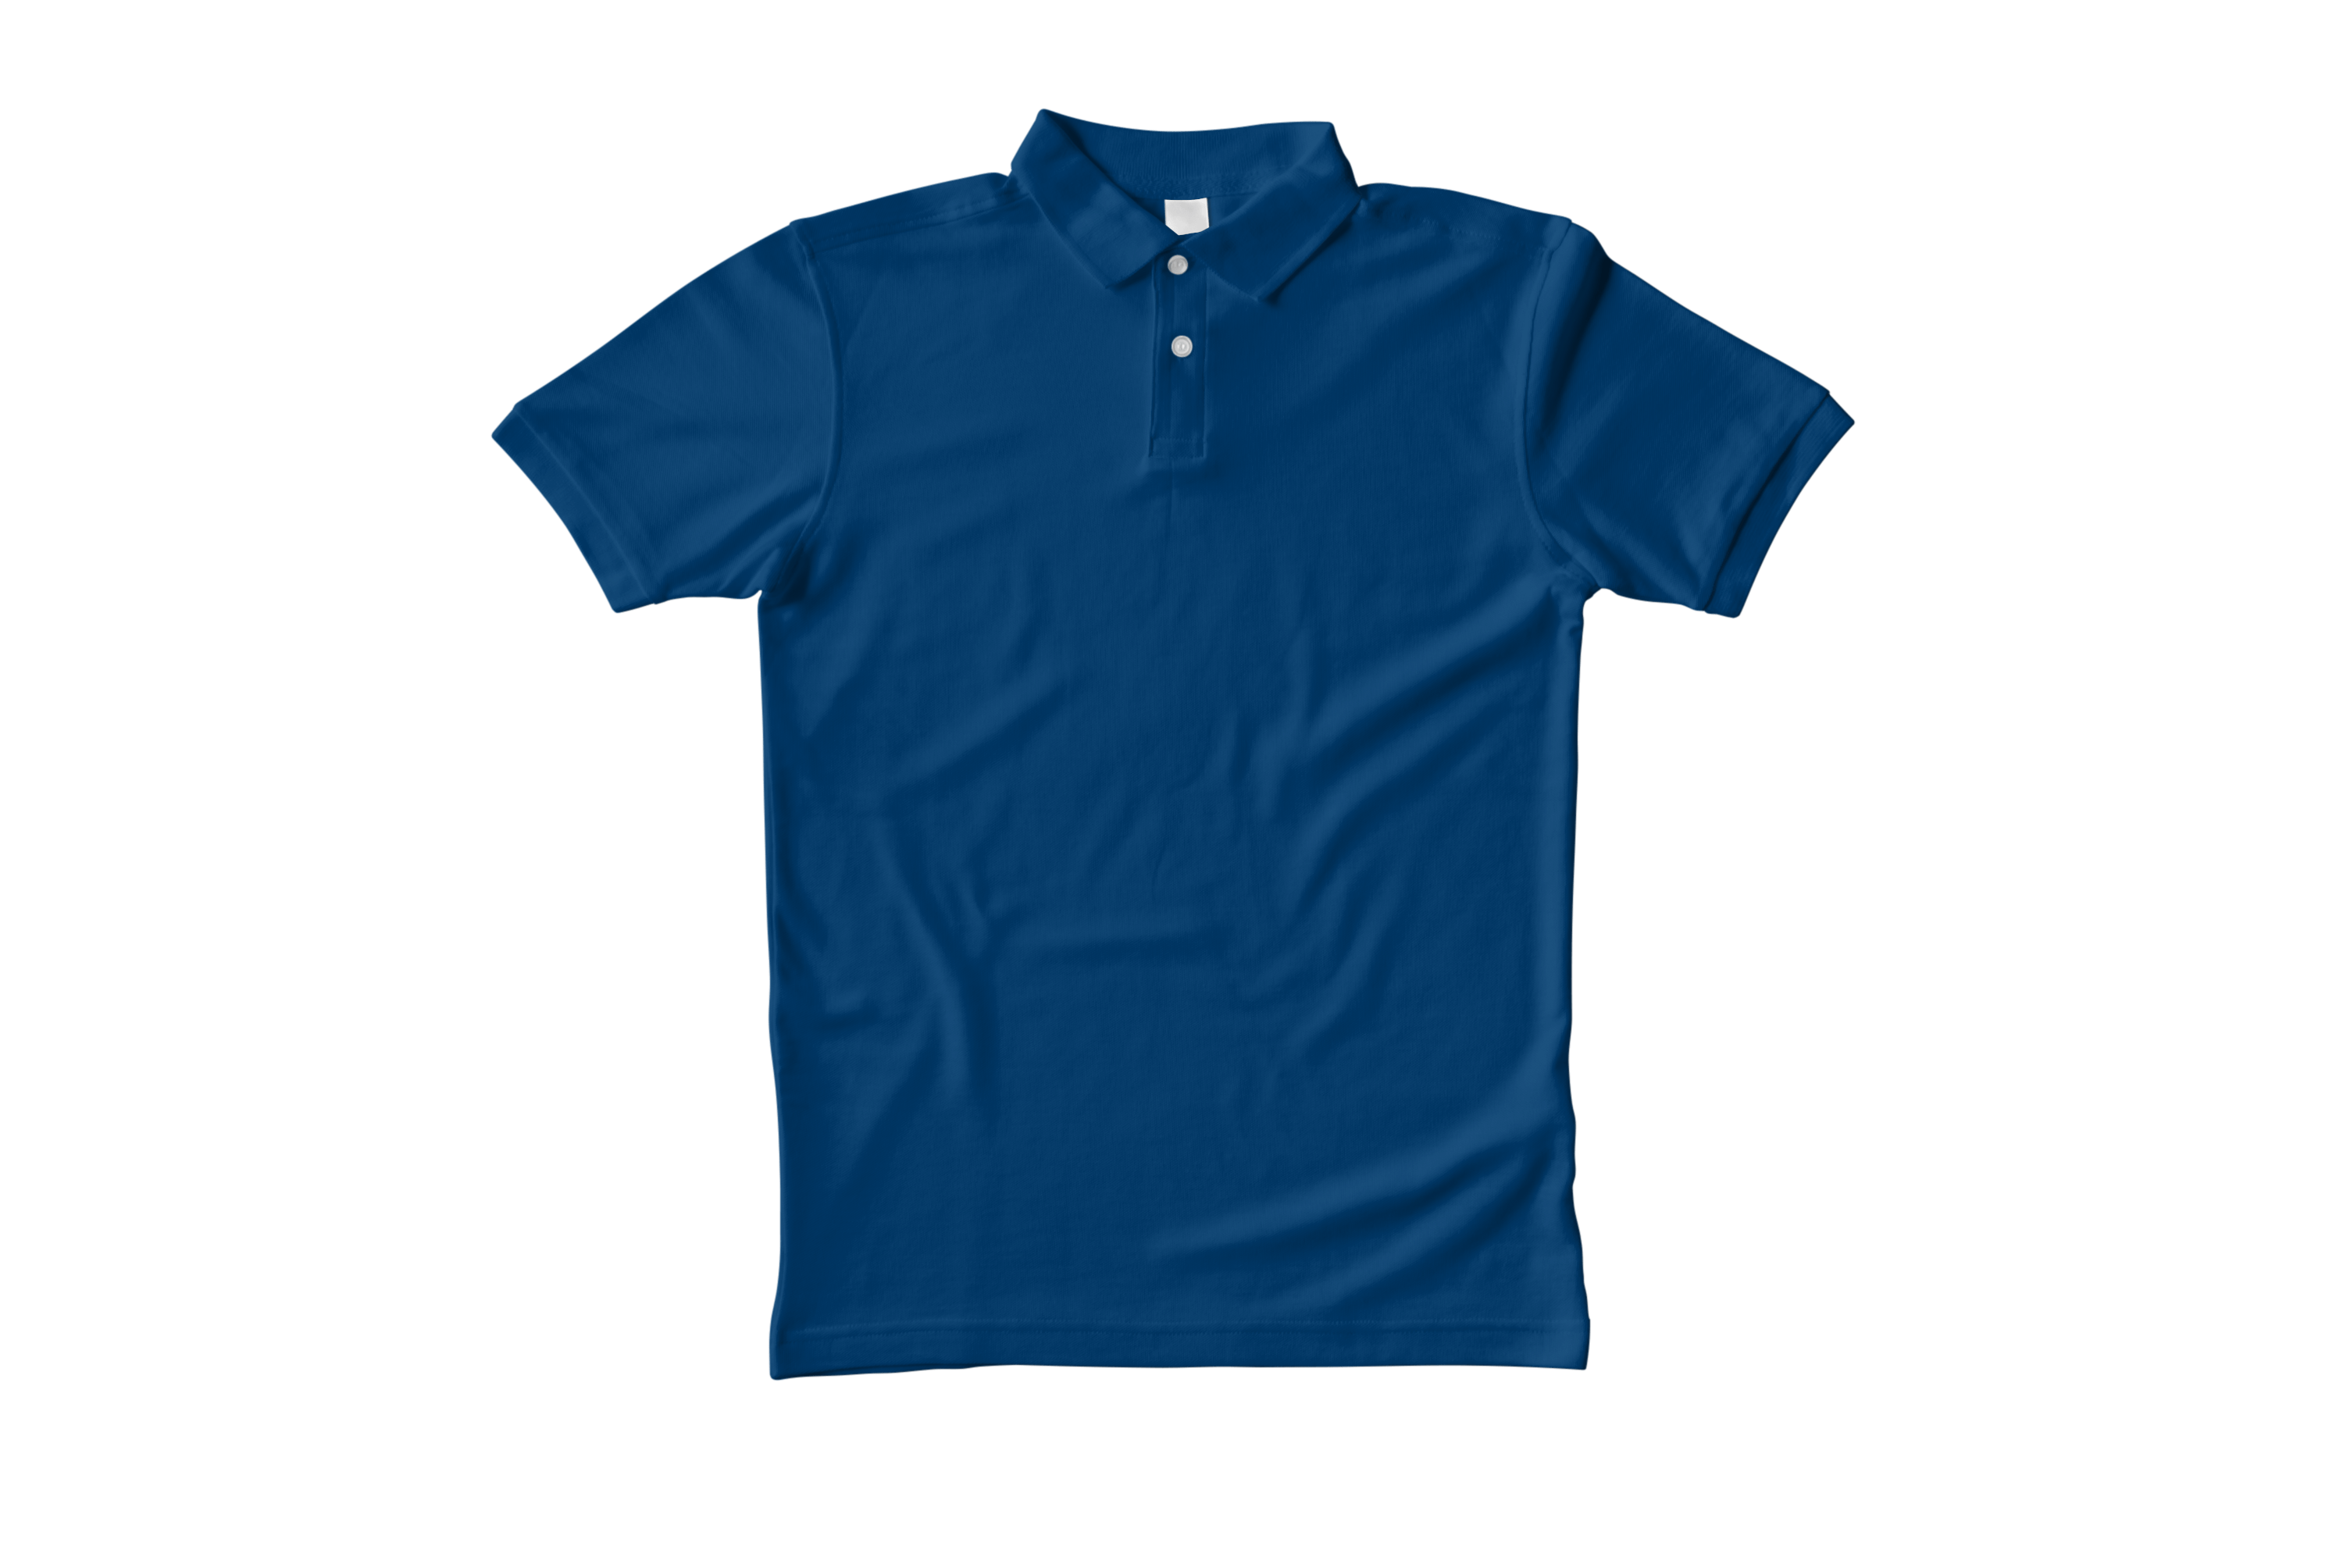 Corporate Apparel Company Clothing Branding Pros